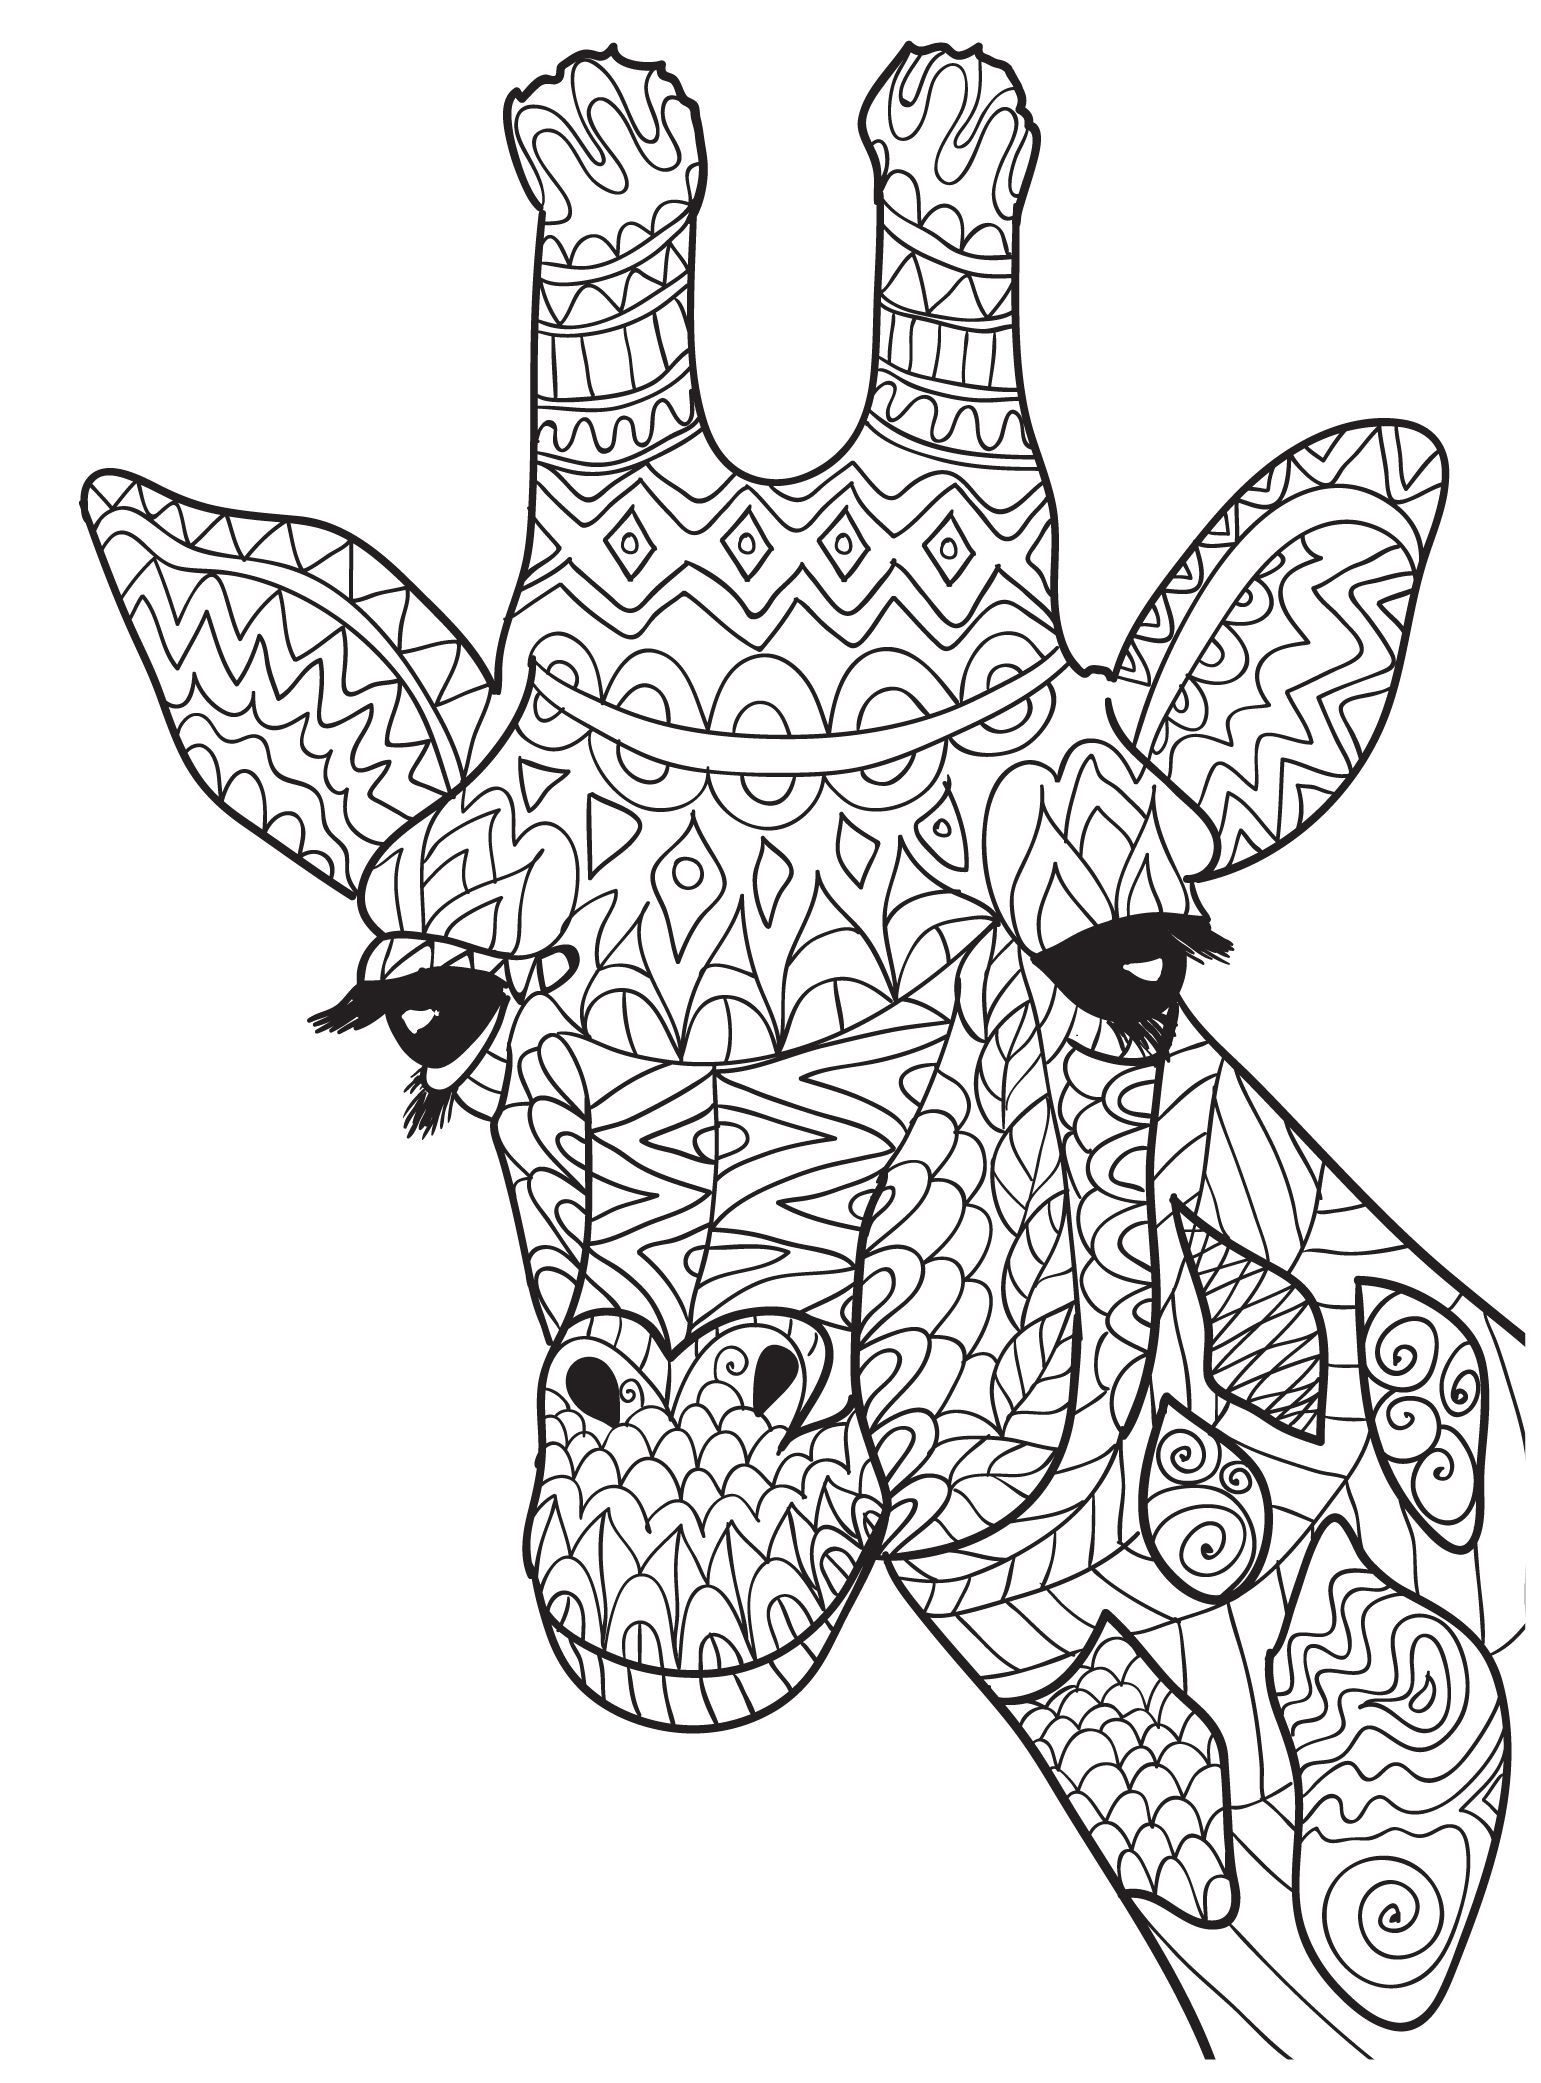 Animal coloring pages pdf Adult coloring, Dog cat and